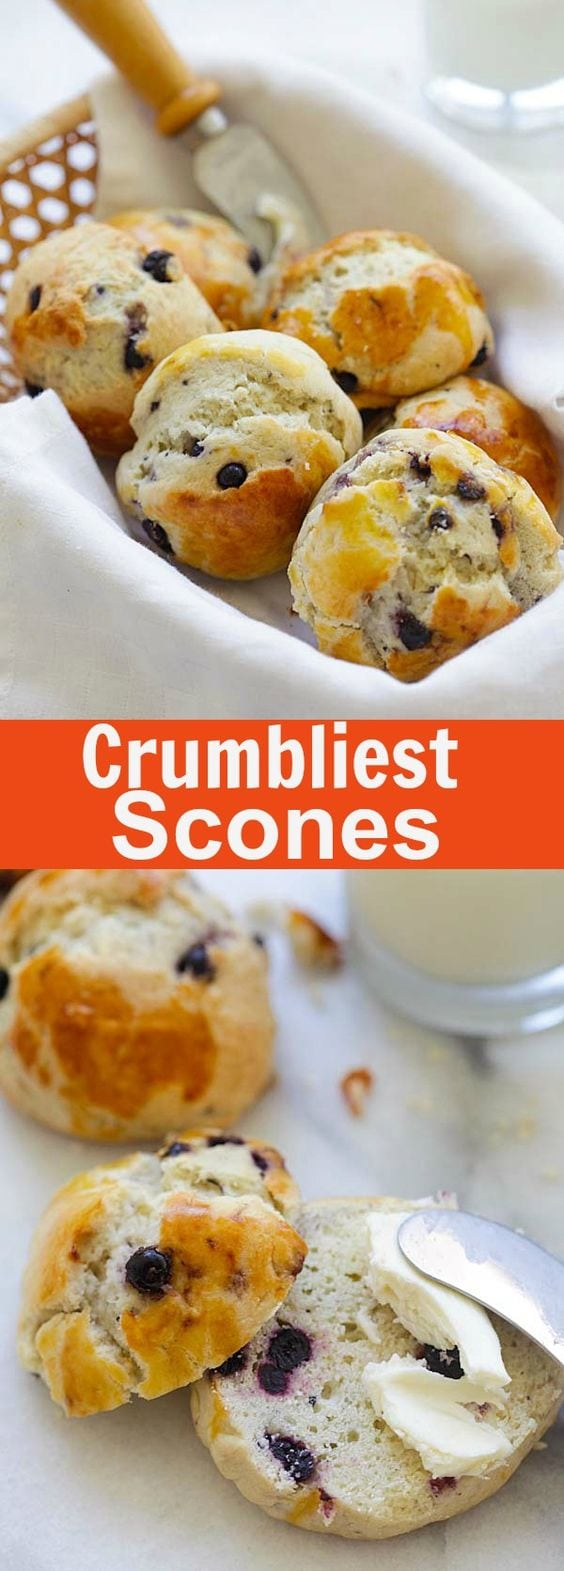 Crumbliest Scones – crumbly and delicious homemade scones recipe by Jamie Oliver. Afternoon tea has never tasted so good   rasamalaysia.com